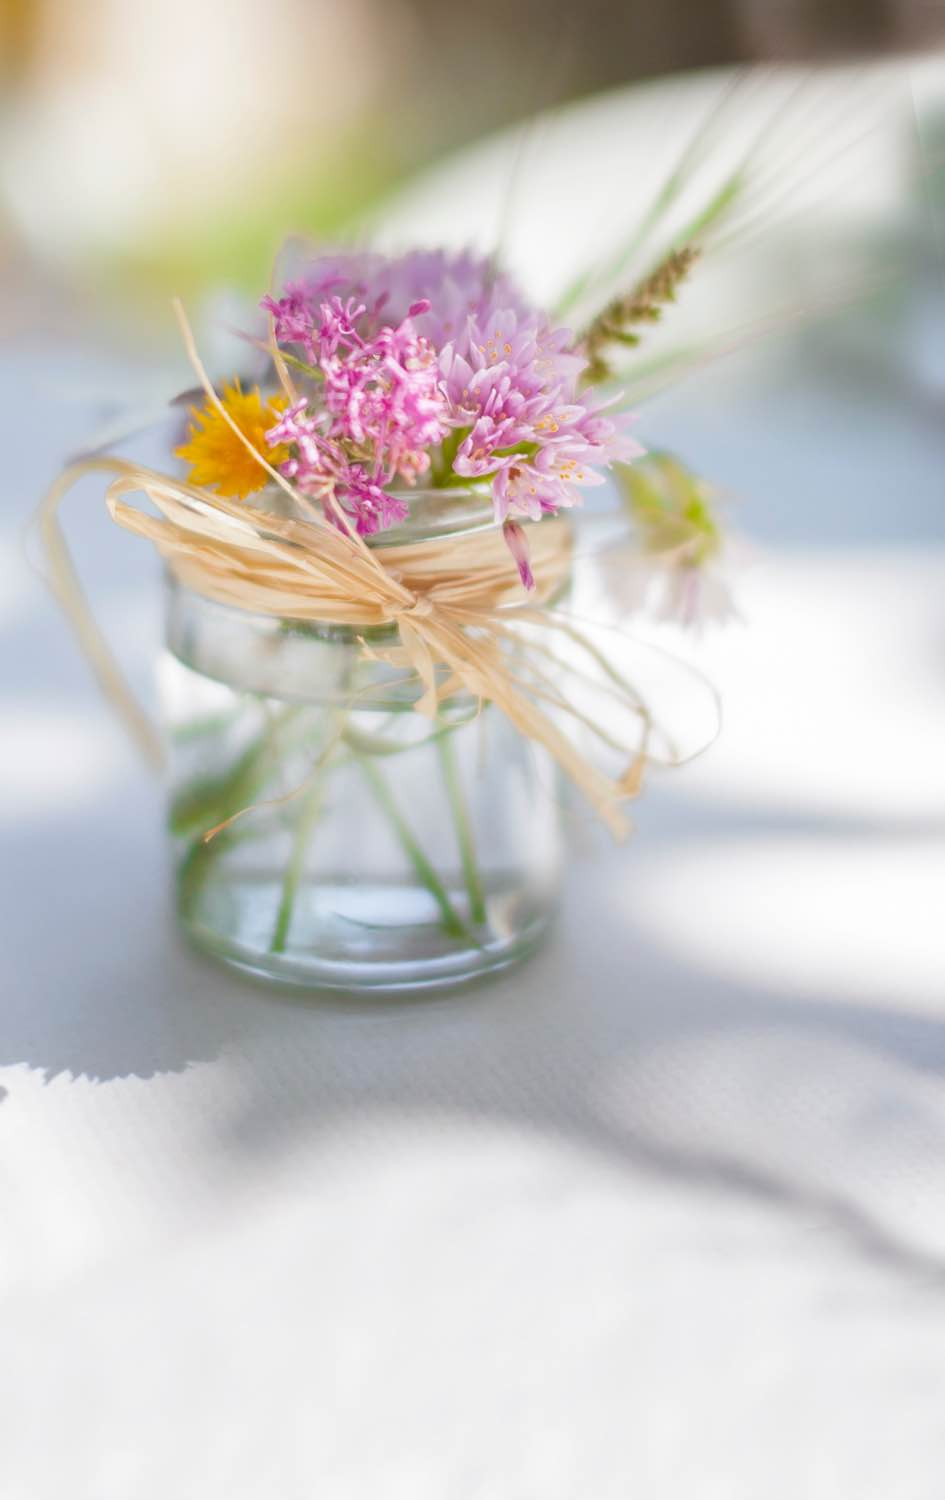 tiny pink flowers in a glass jar diy idea pop shop america